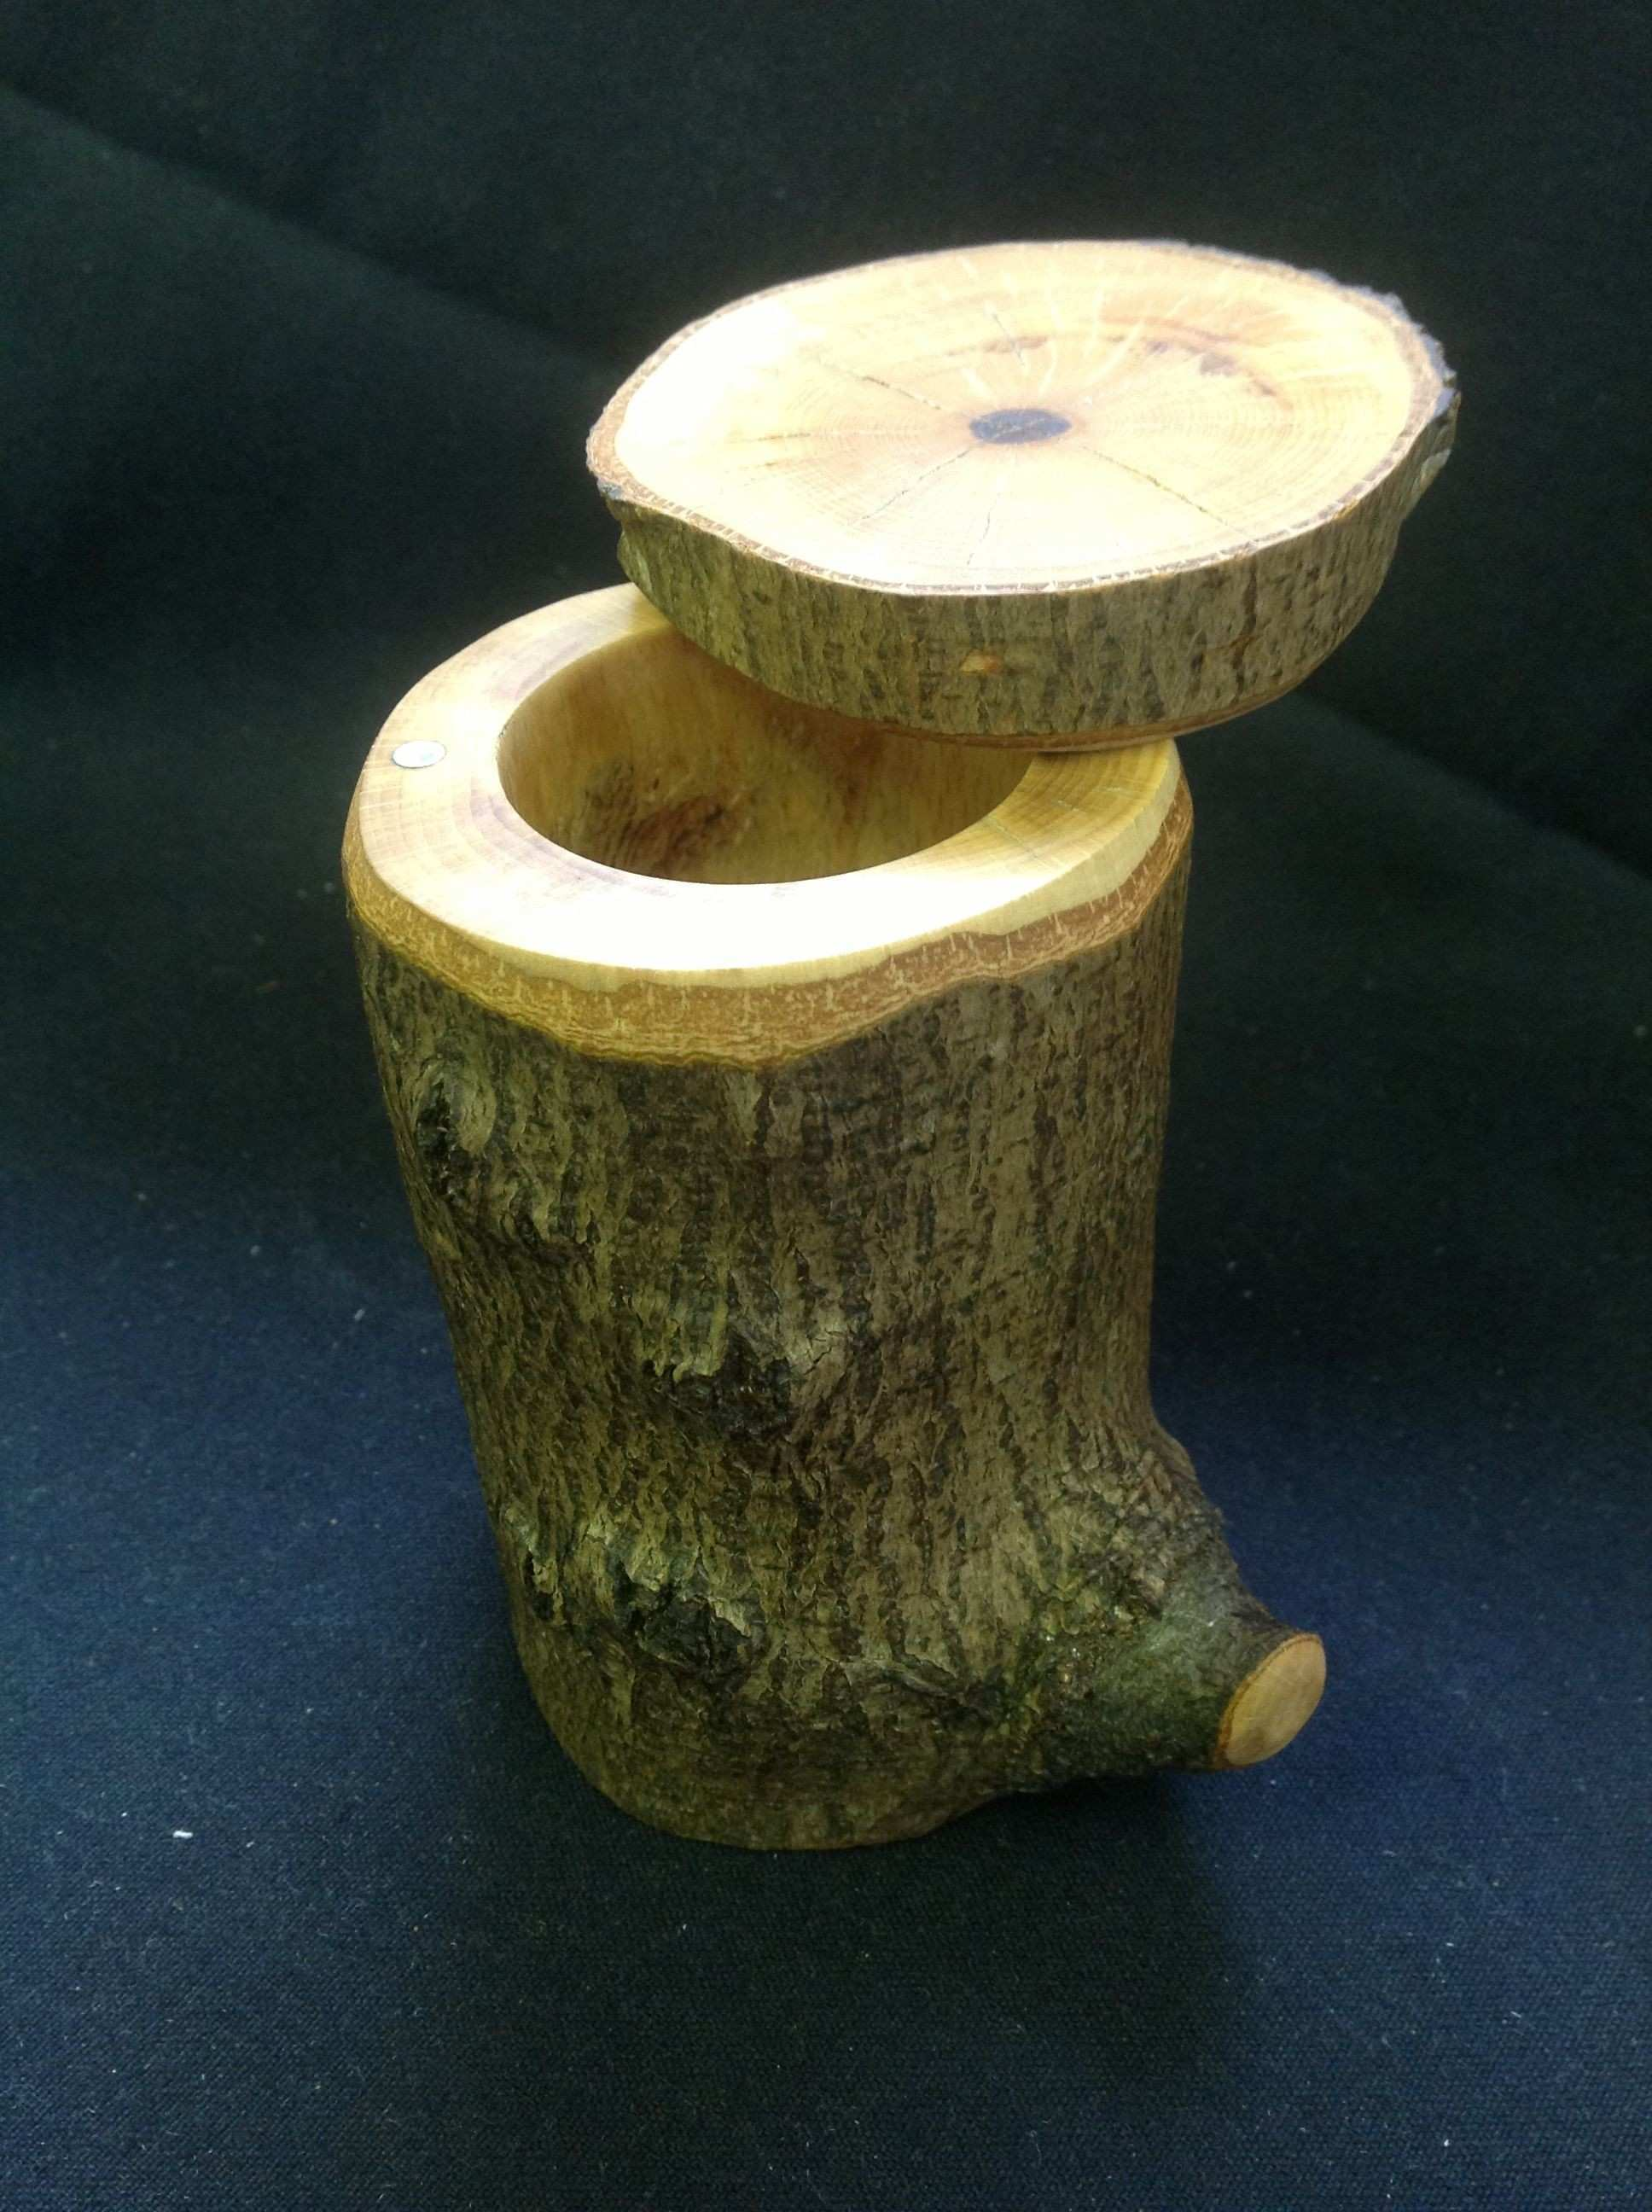 Sugar Maple Tree Stump Jewelry Box The lid attaches and swivels on